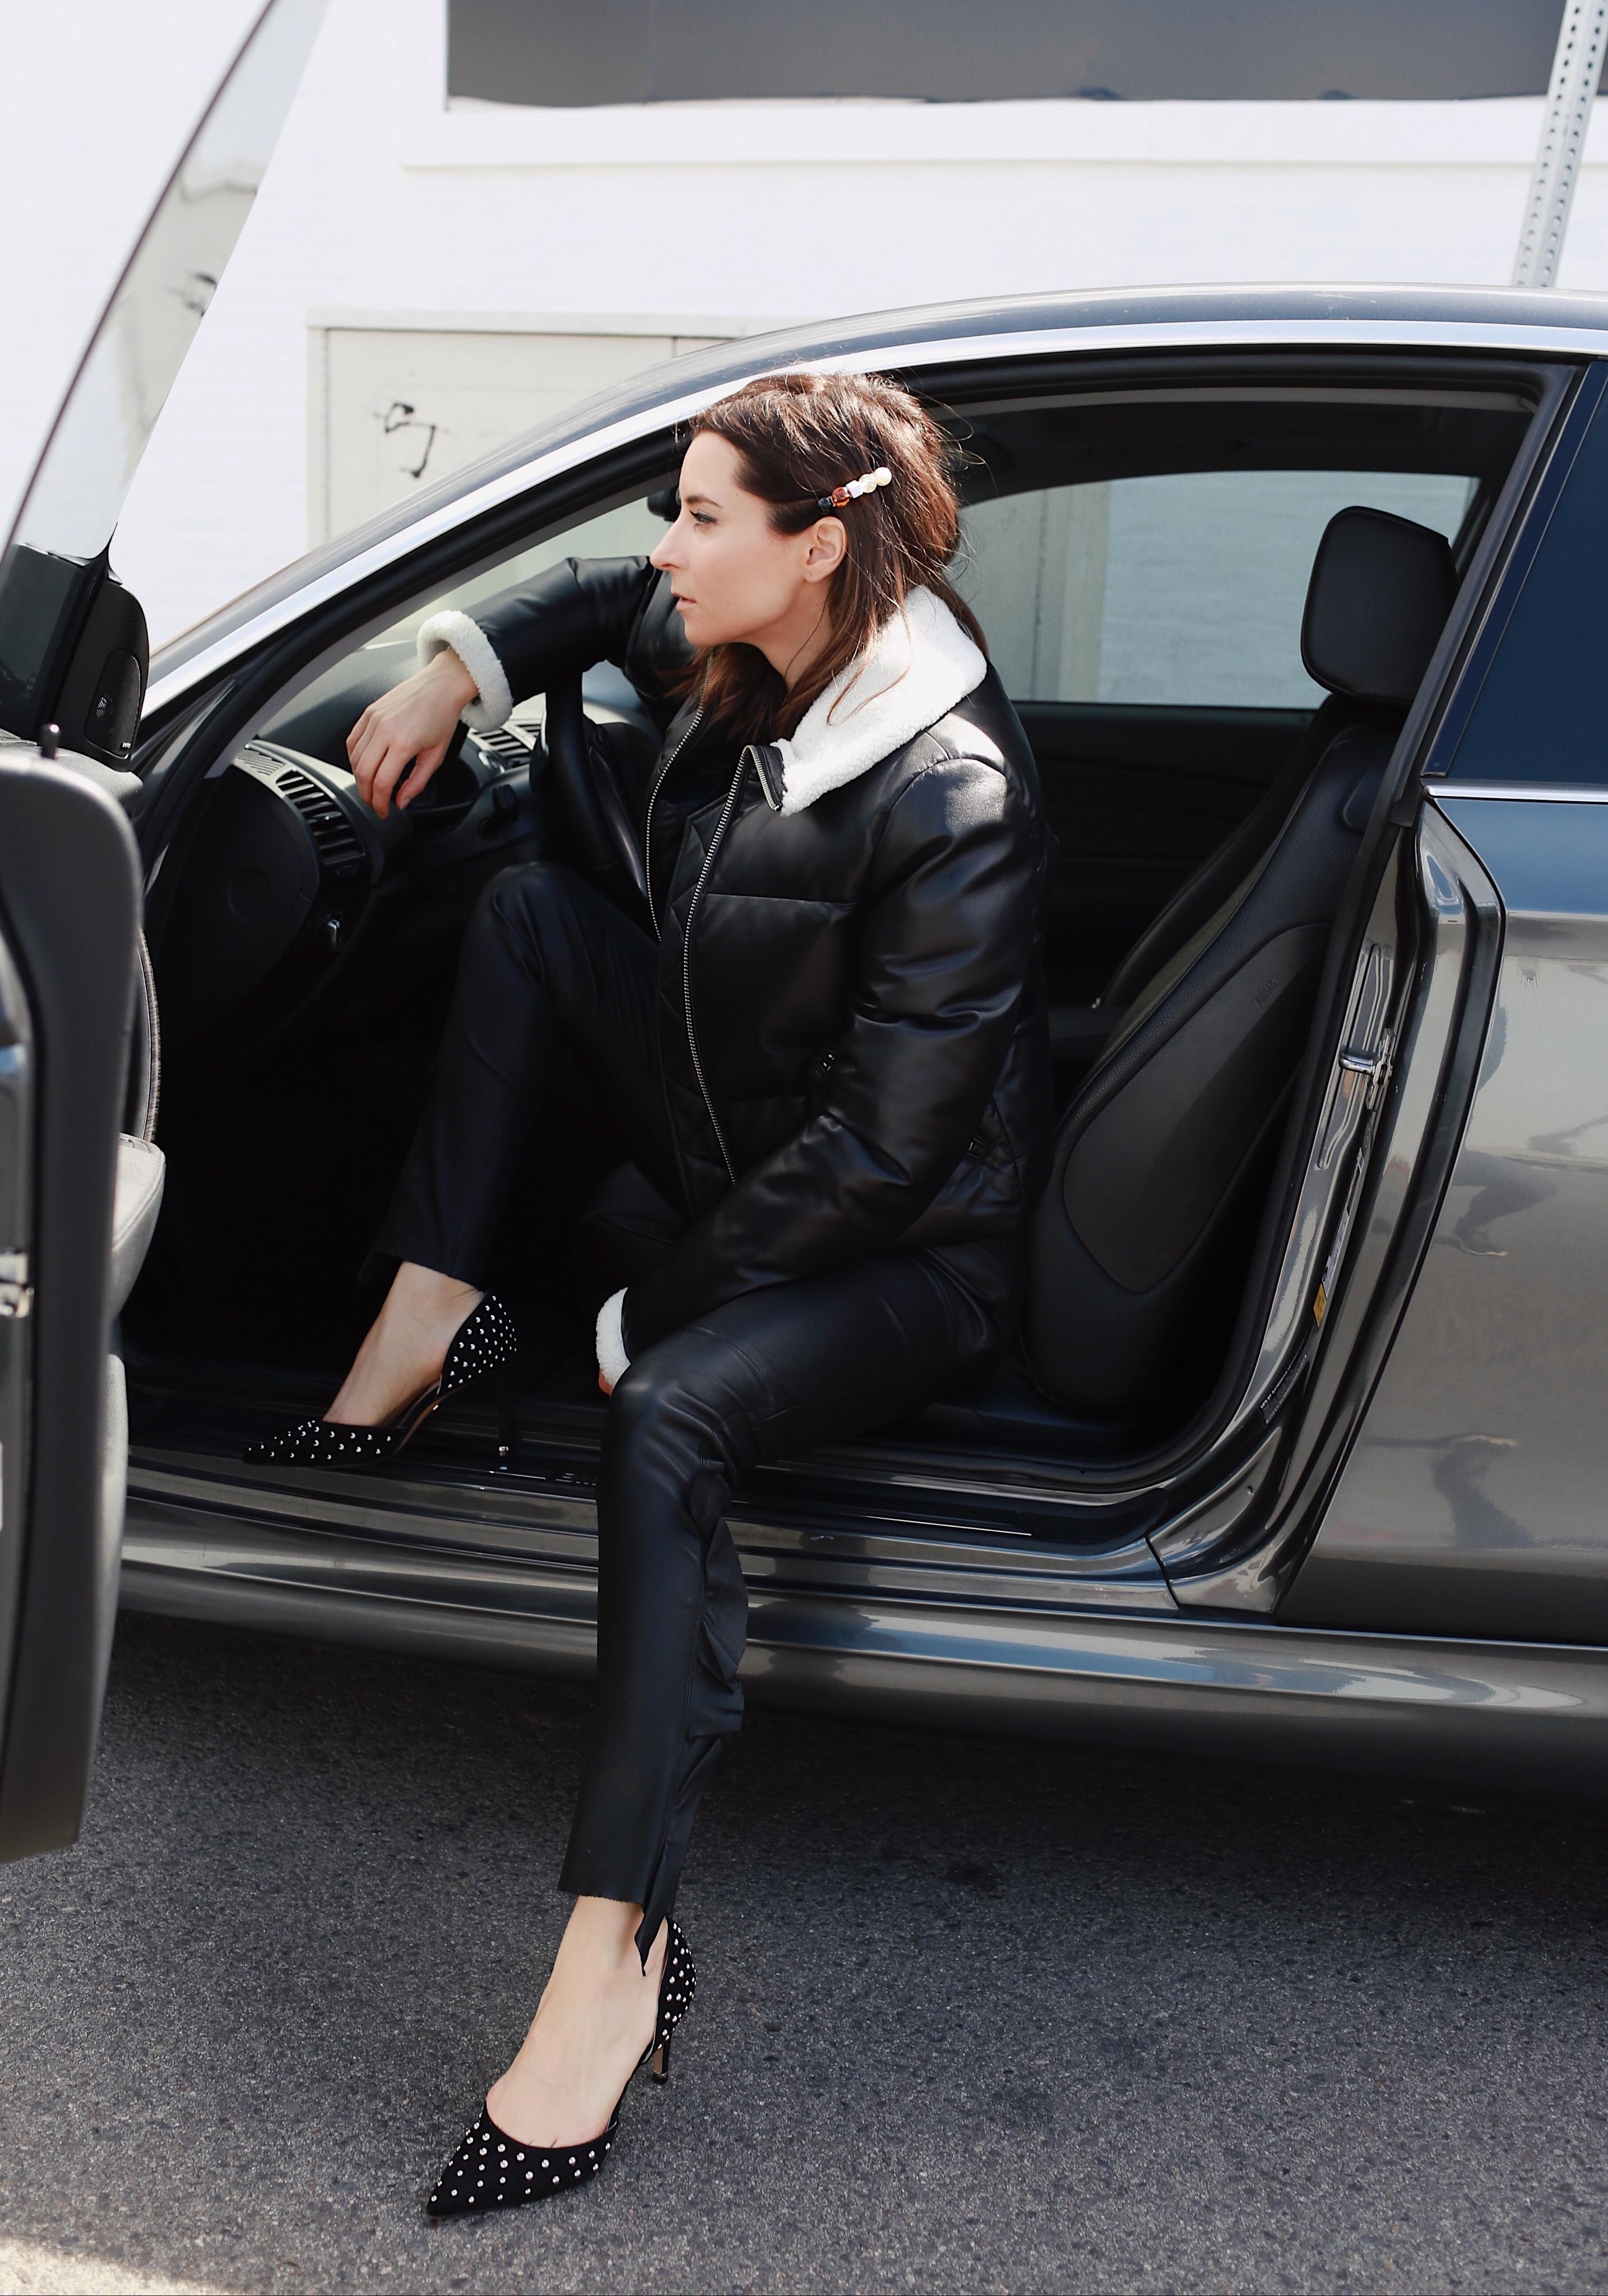 85 Riley studded d Orsay pumps Kenneth Cole Tech cole footwear Riley shoes comfortable versatile stylish pumps perfect to commute #HeelsForTheHustle #WhatMovesYou car commute